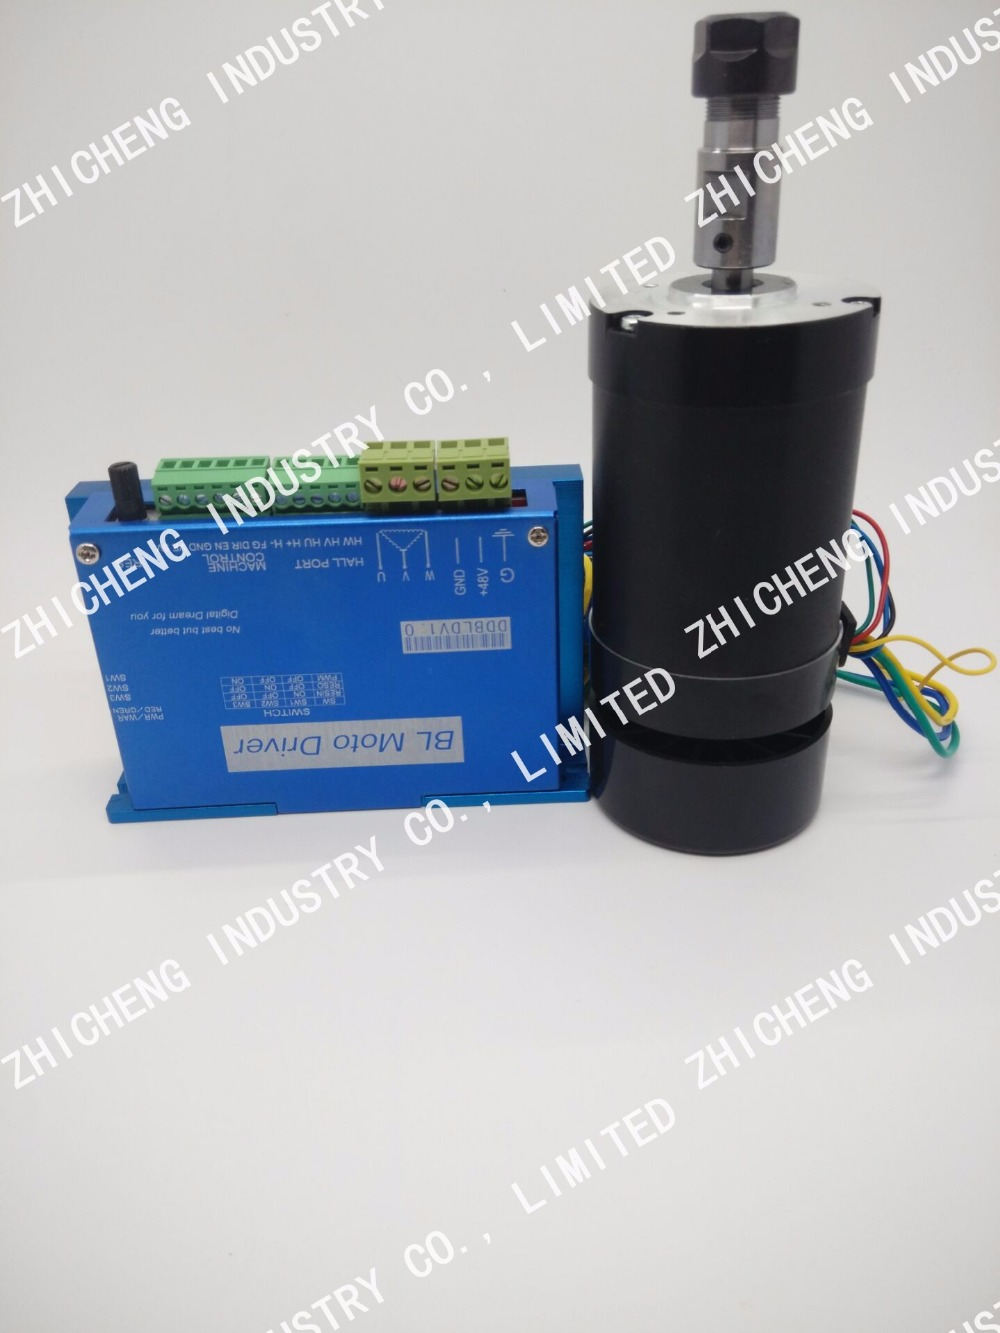 Hot sell Brushless DC motor driver can drive all 60VDC motor 750W leadshine 50w 24v dc brushless motor drive kit blm57050 1000 acs606 servo brushless driver 3a 0 16nm 3000rpm pulse control